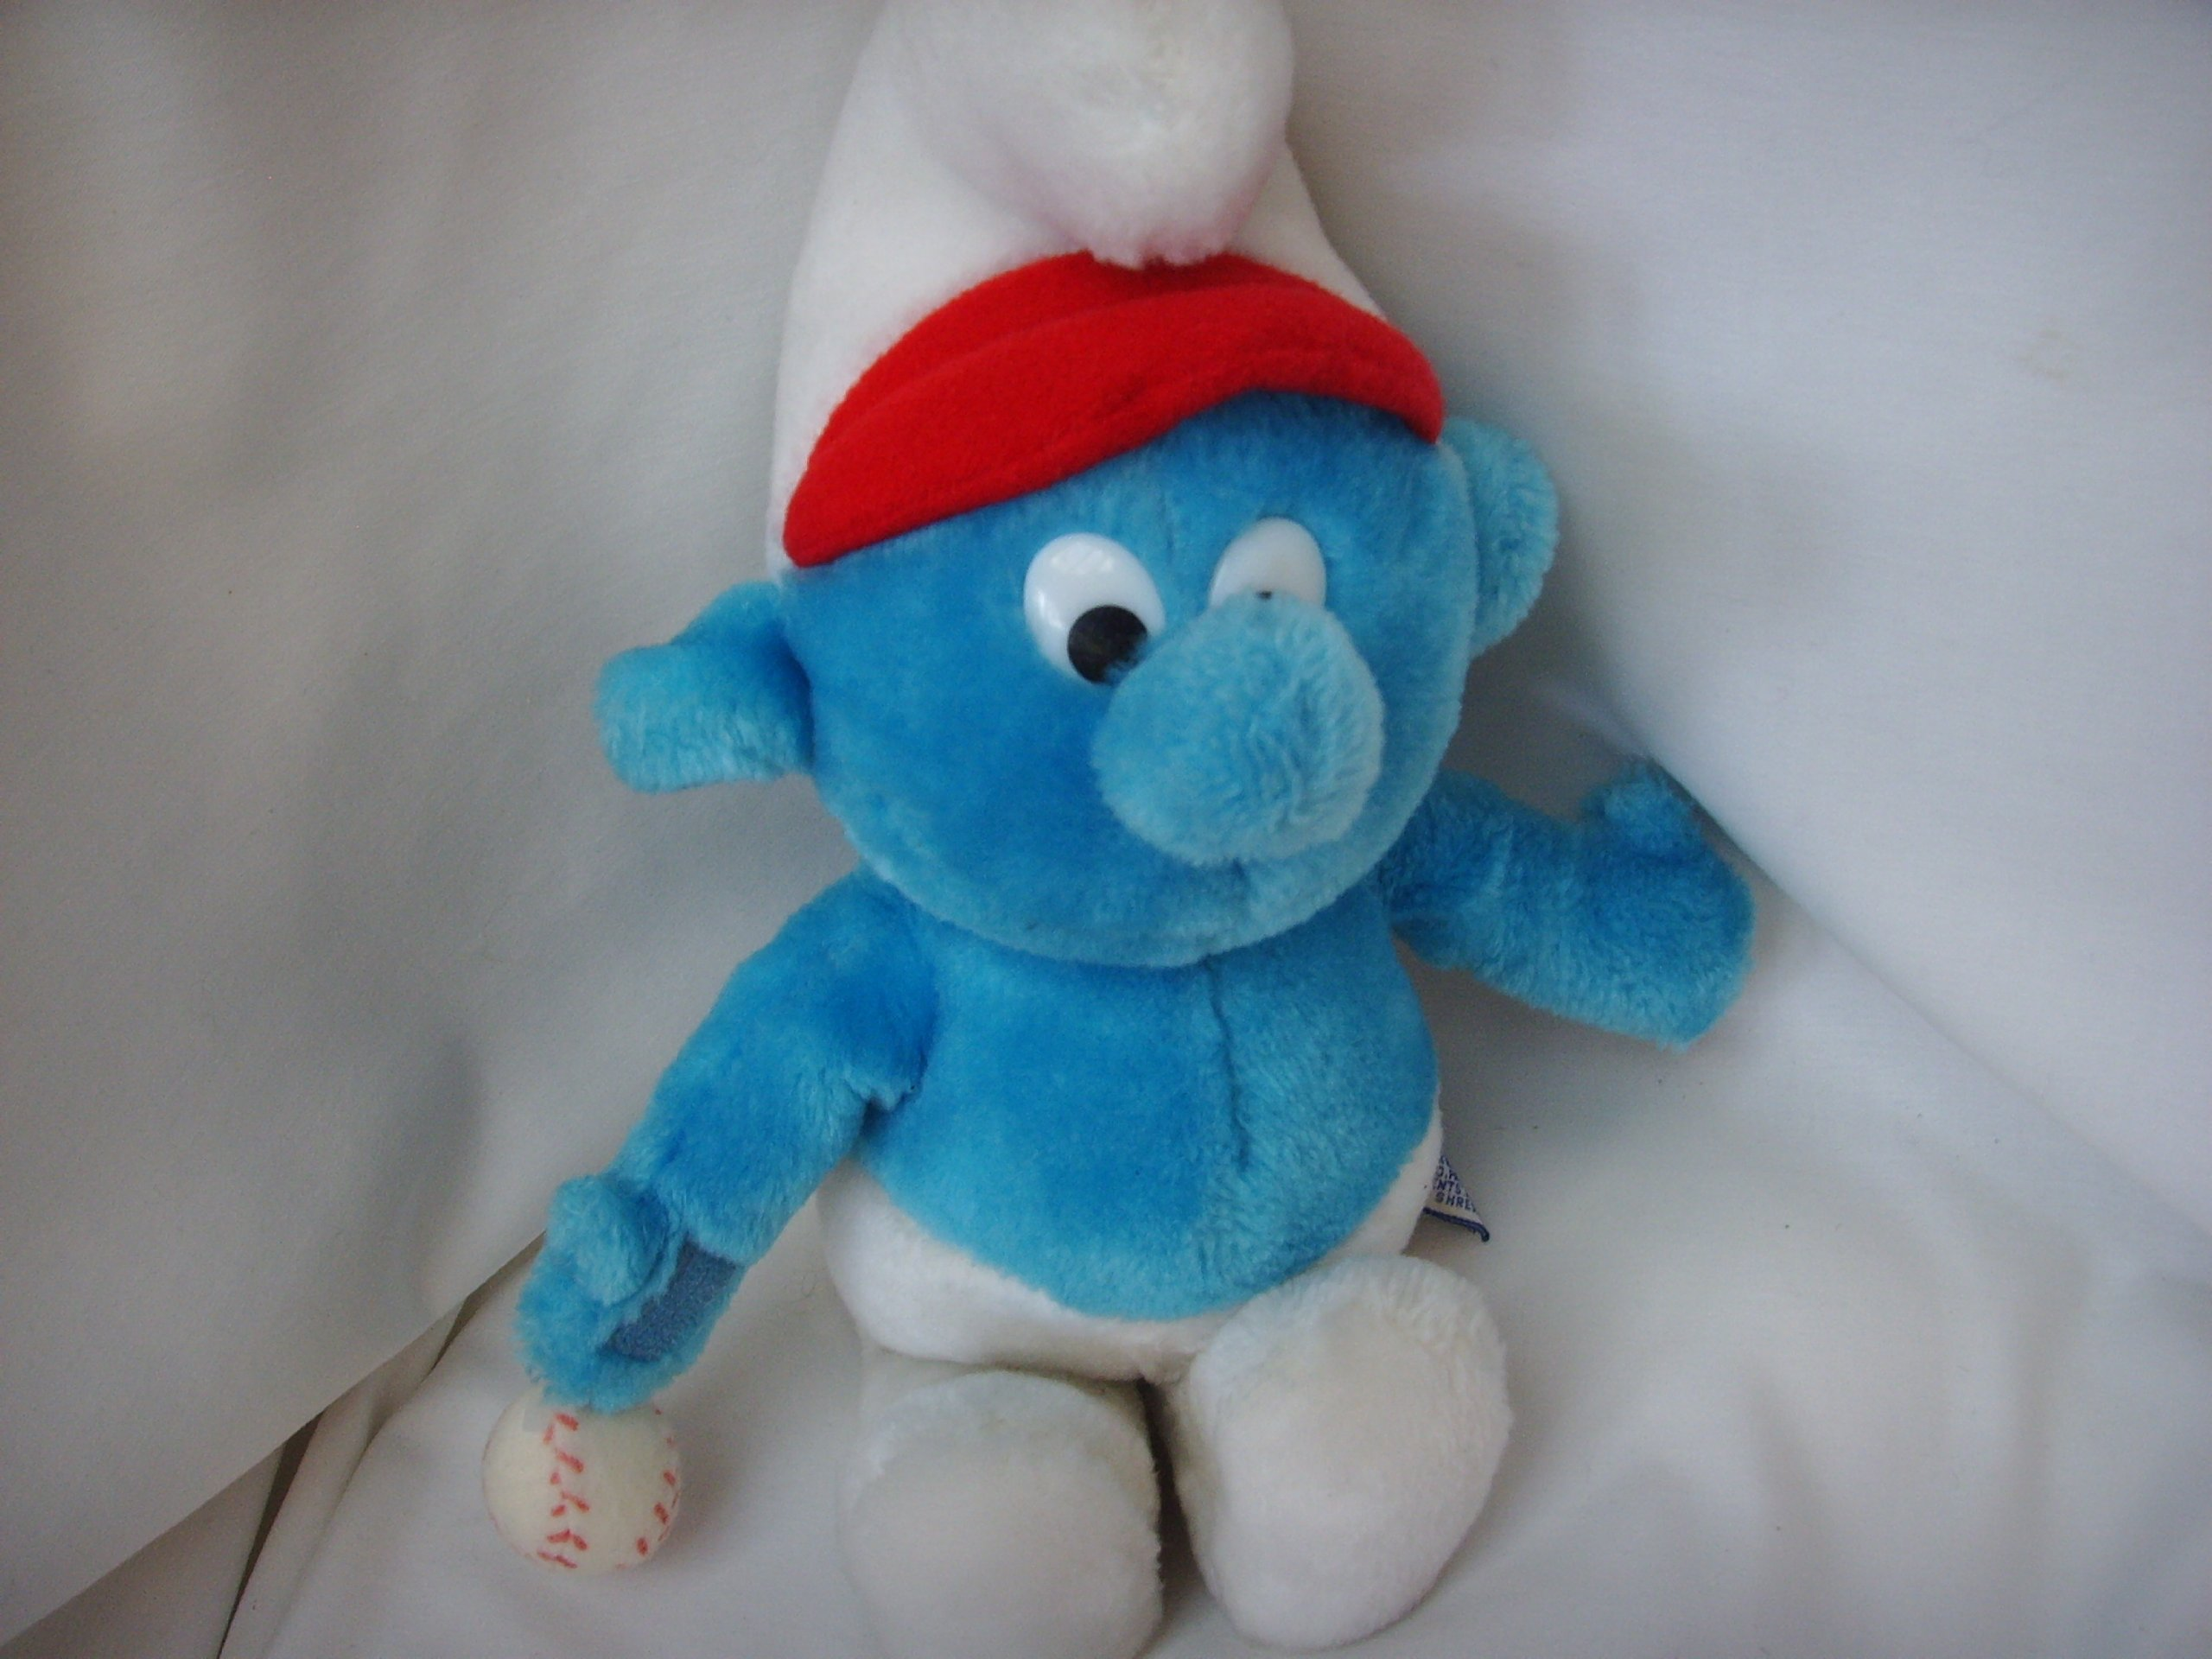 Smurf Plush Toy Baseball Large 12'' Vintage Collectible ; 1981 by Wallace Berrie & Co